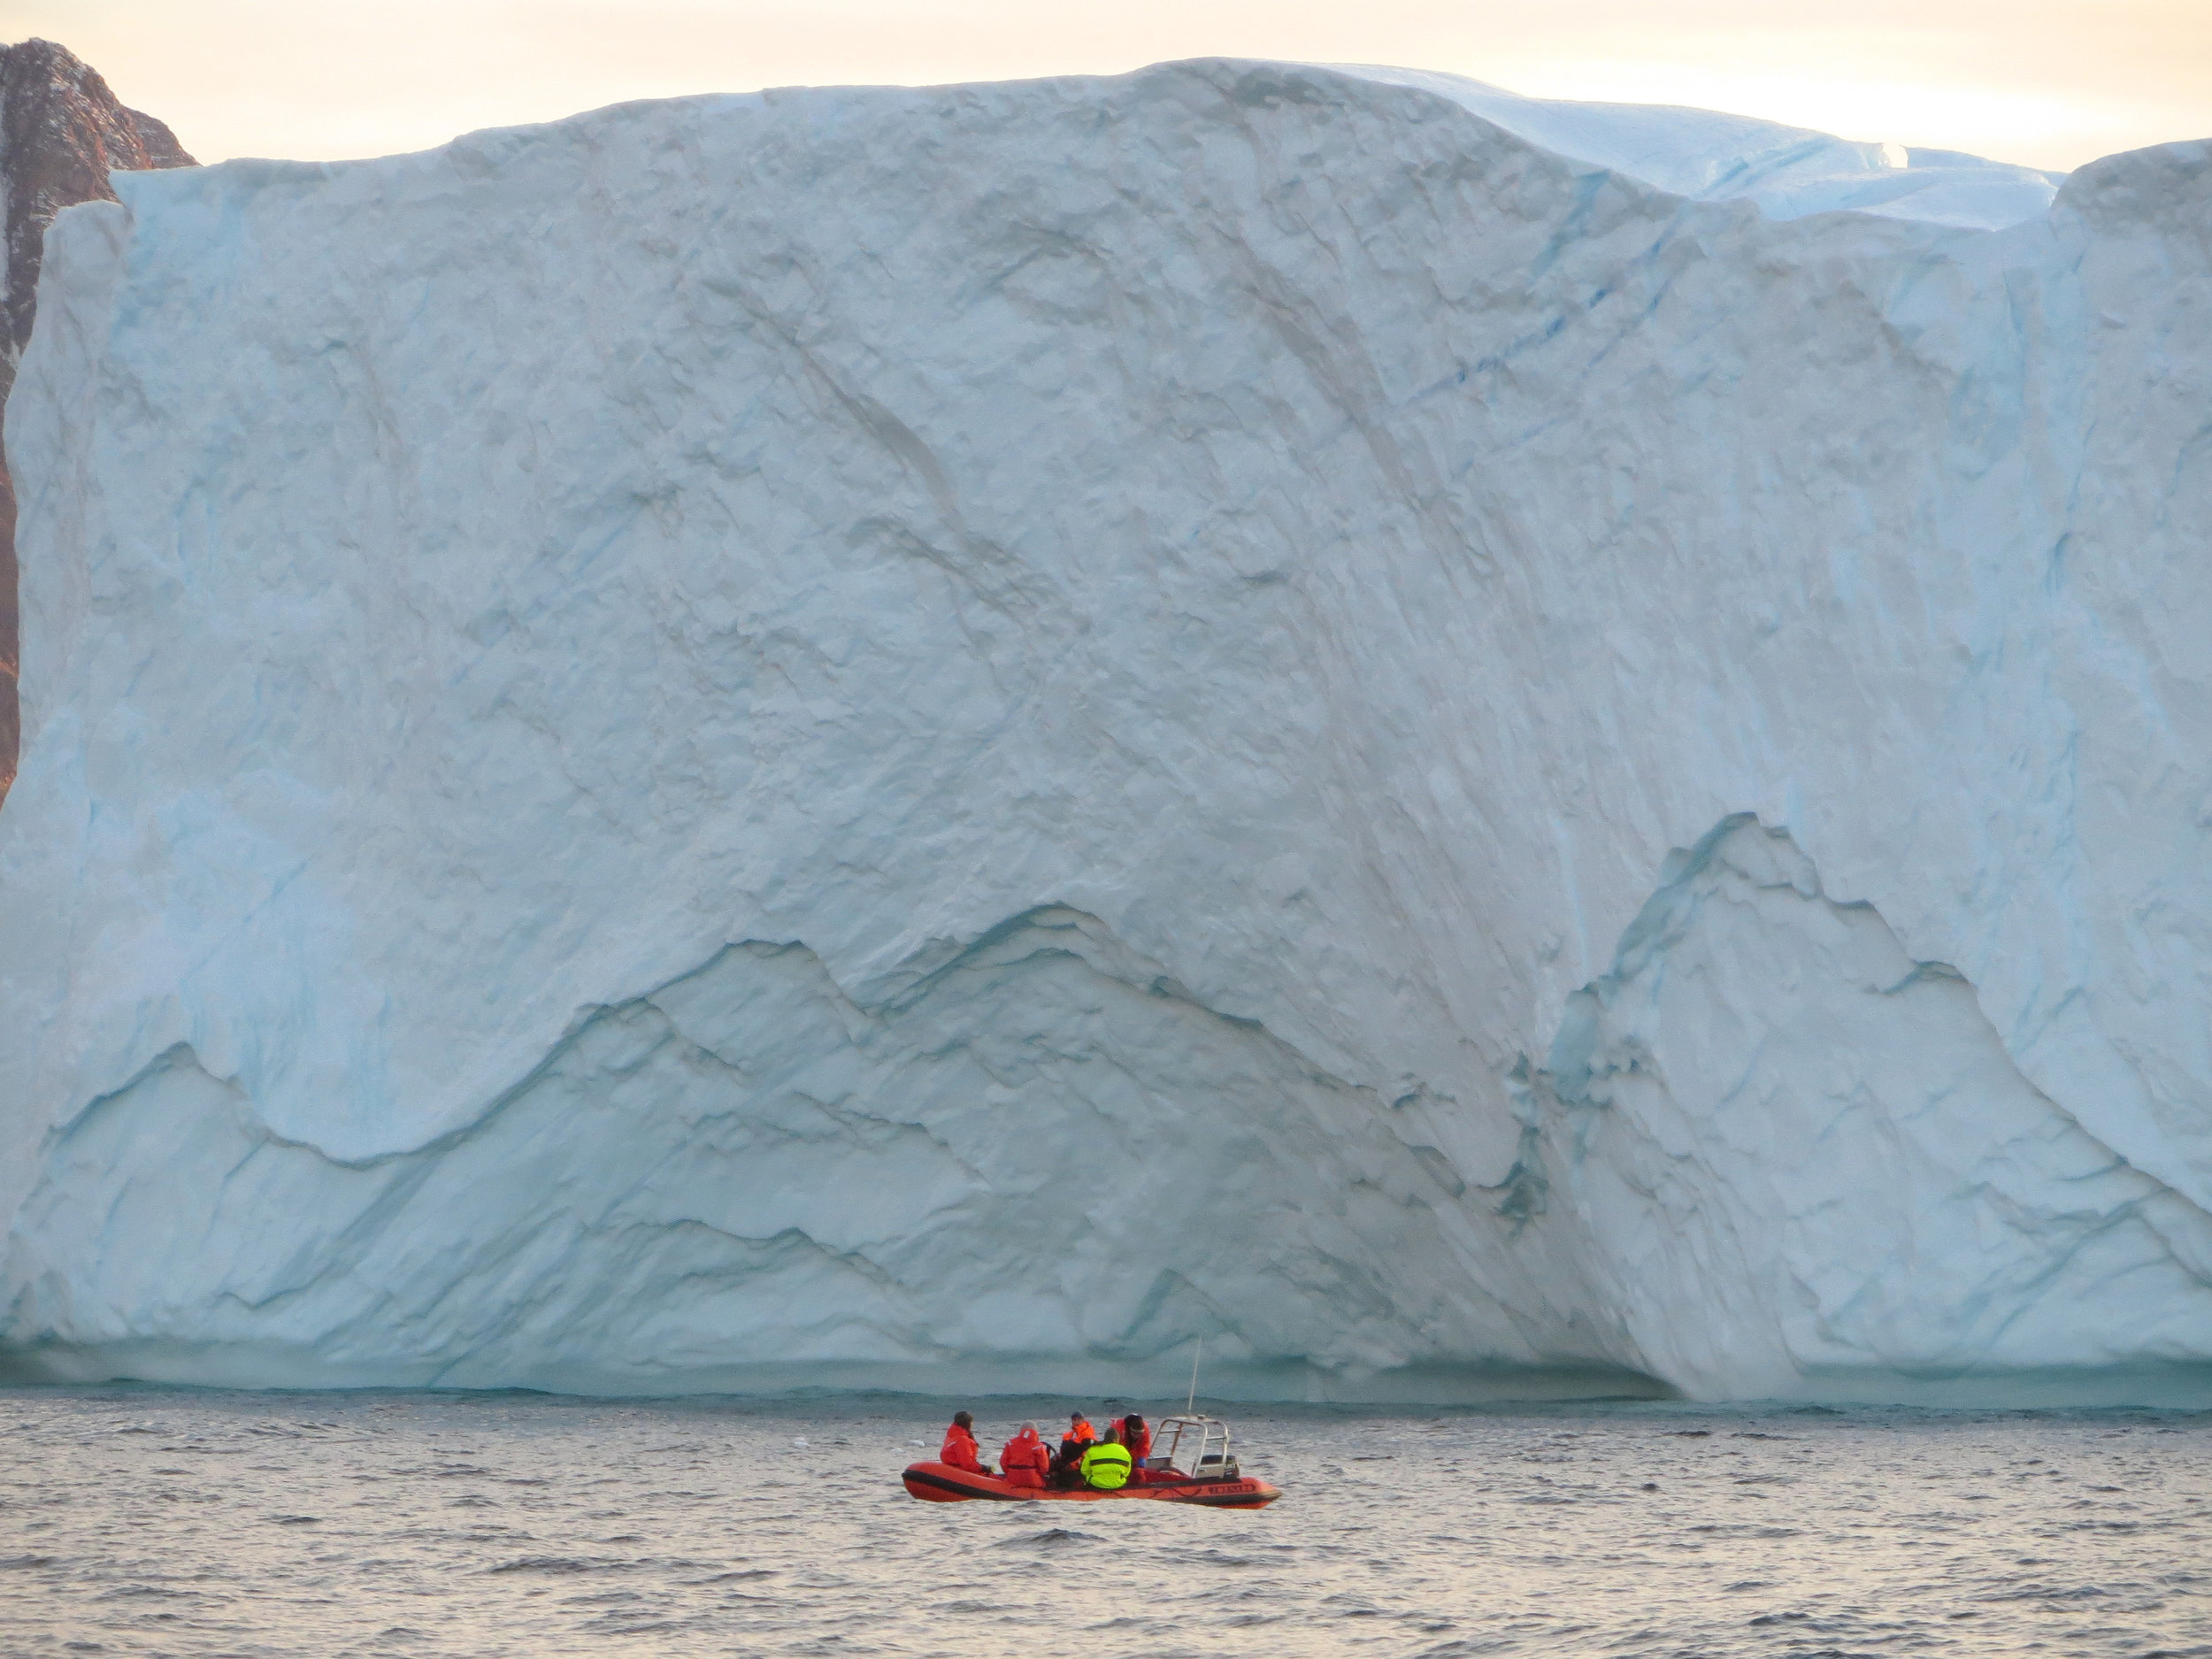 Part of the research involves surveying the conditions at the glacial terminus. Here a team is pictured in front of an iceberg in a Zodiac. Photo: Marcy Davis